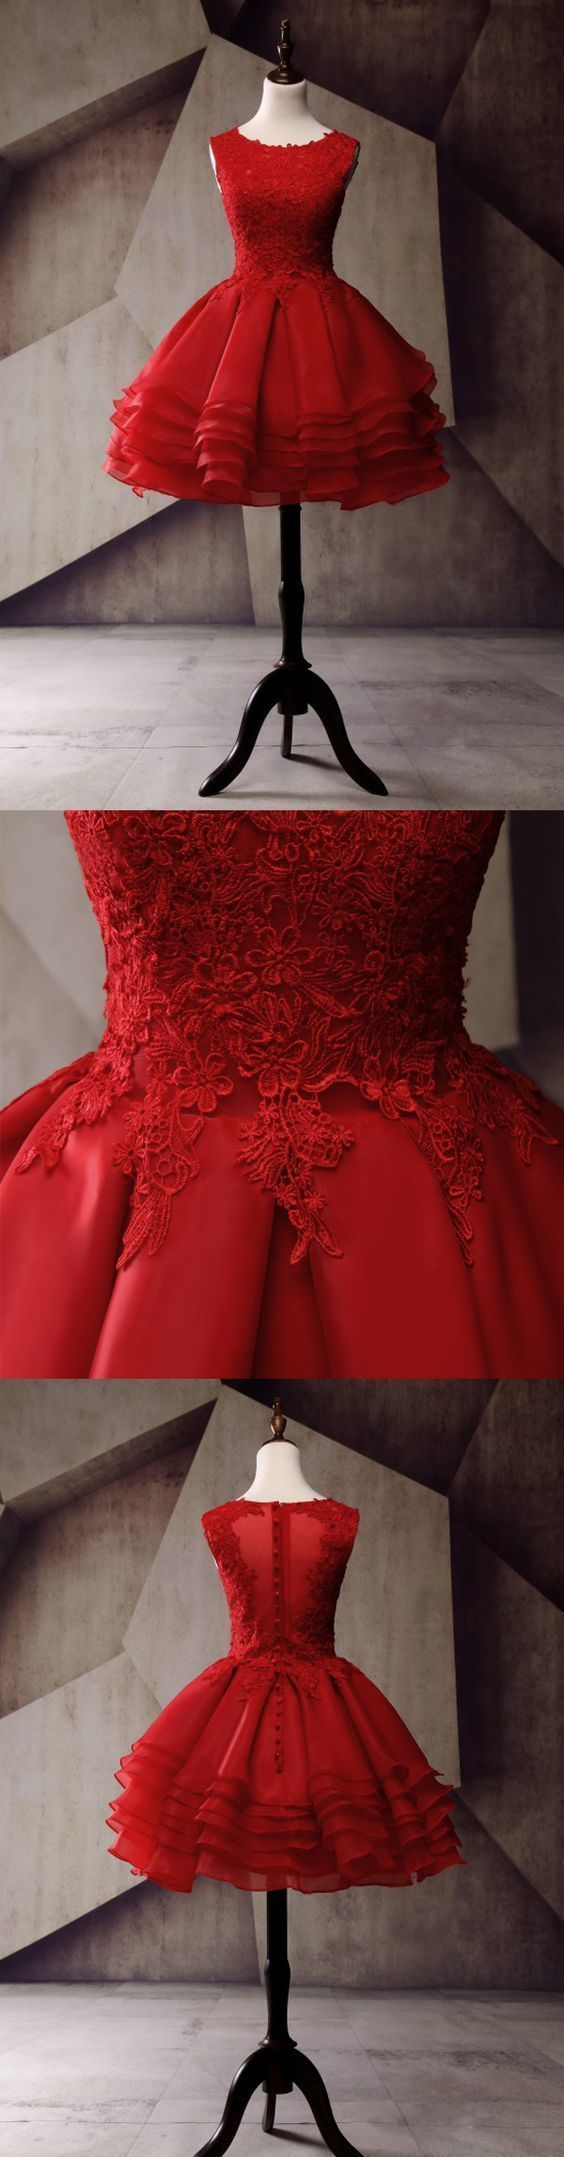 Sexy O-Neck Lace Prom Dress Short, Skirts Tiers Short Homecoming Dress, A Line